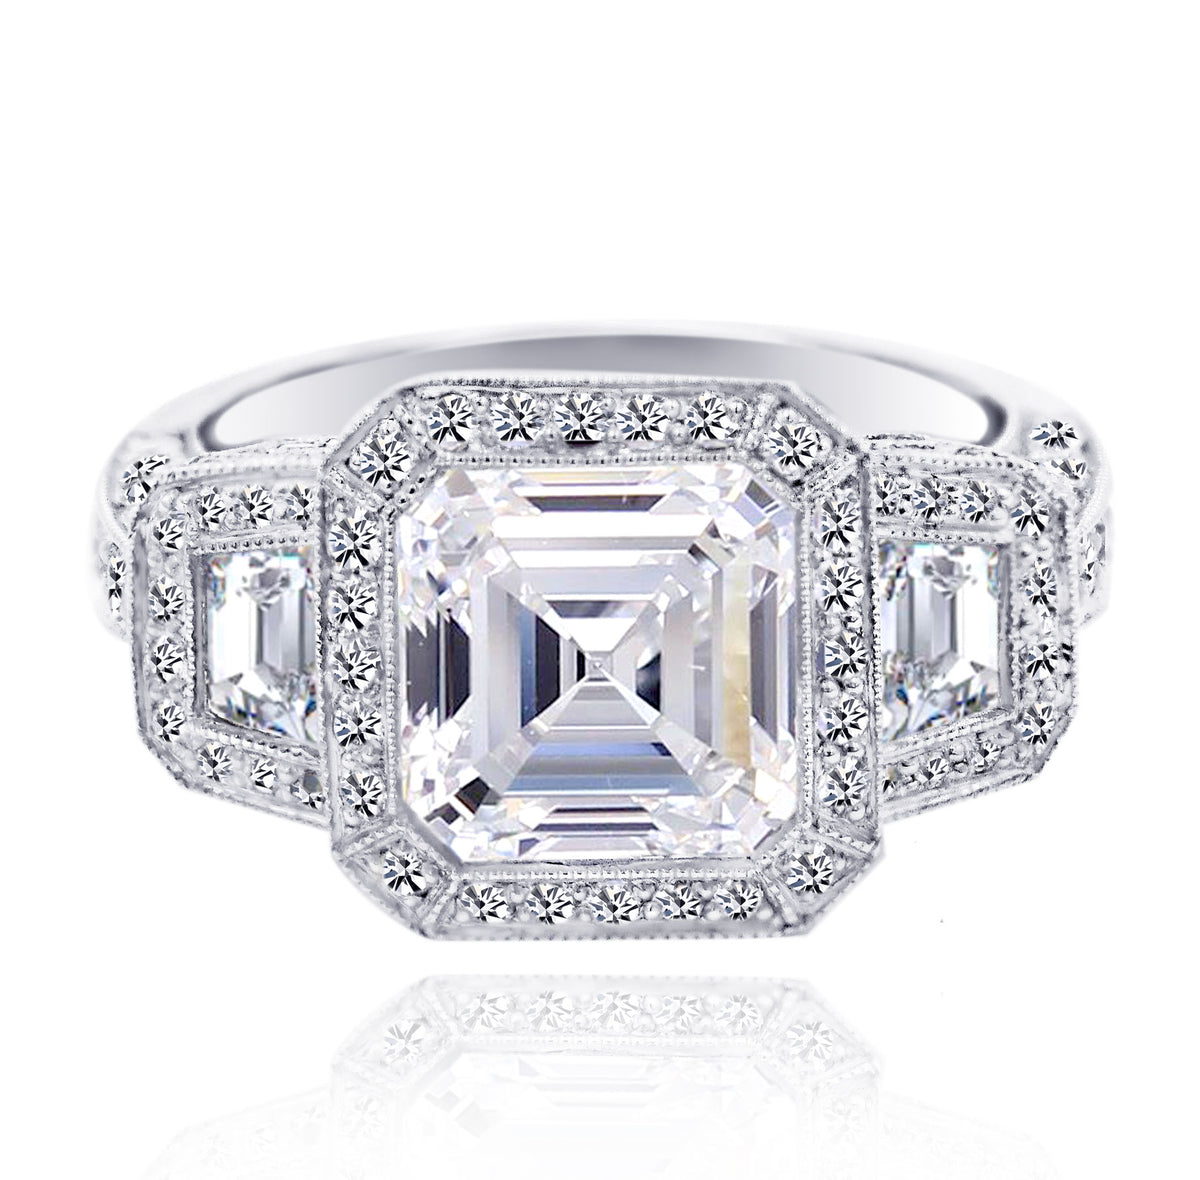 JB Star Platinum Halo Assher Cut Diamond Ring